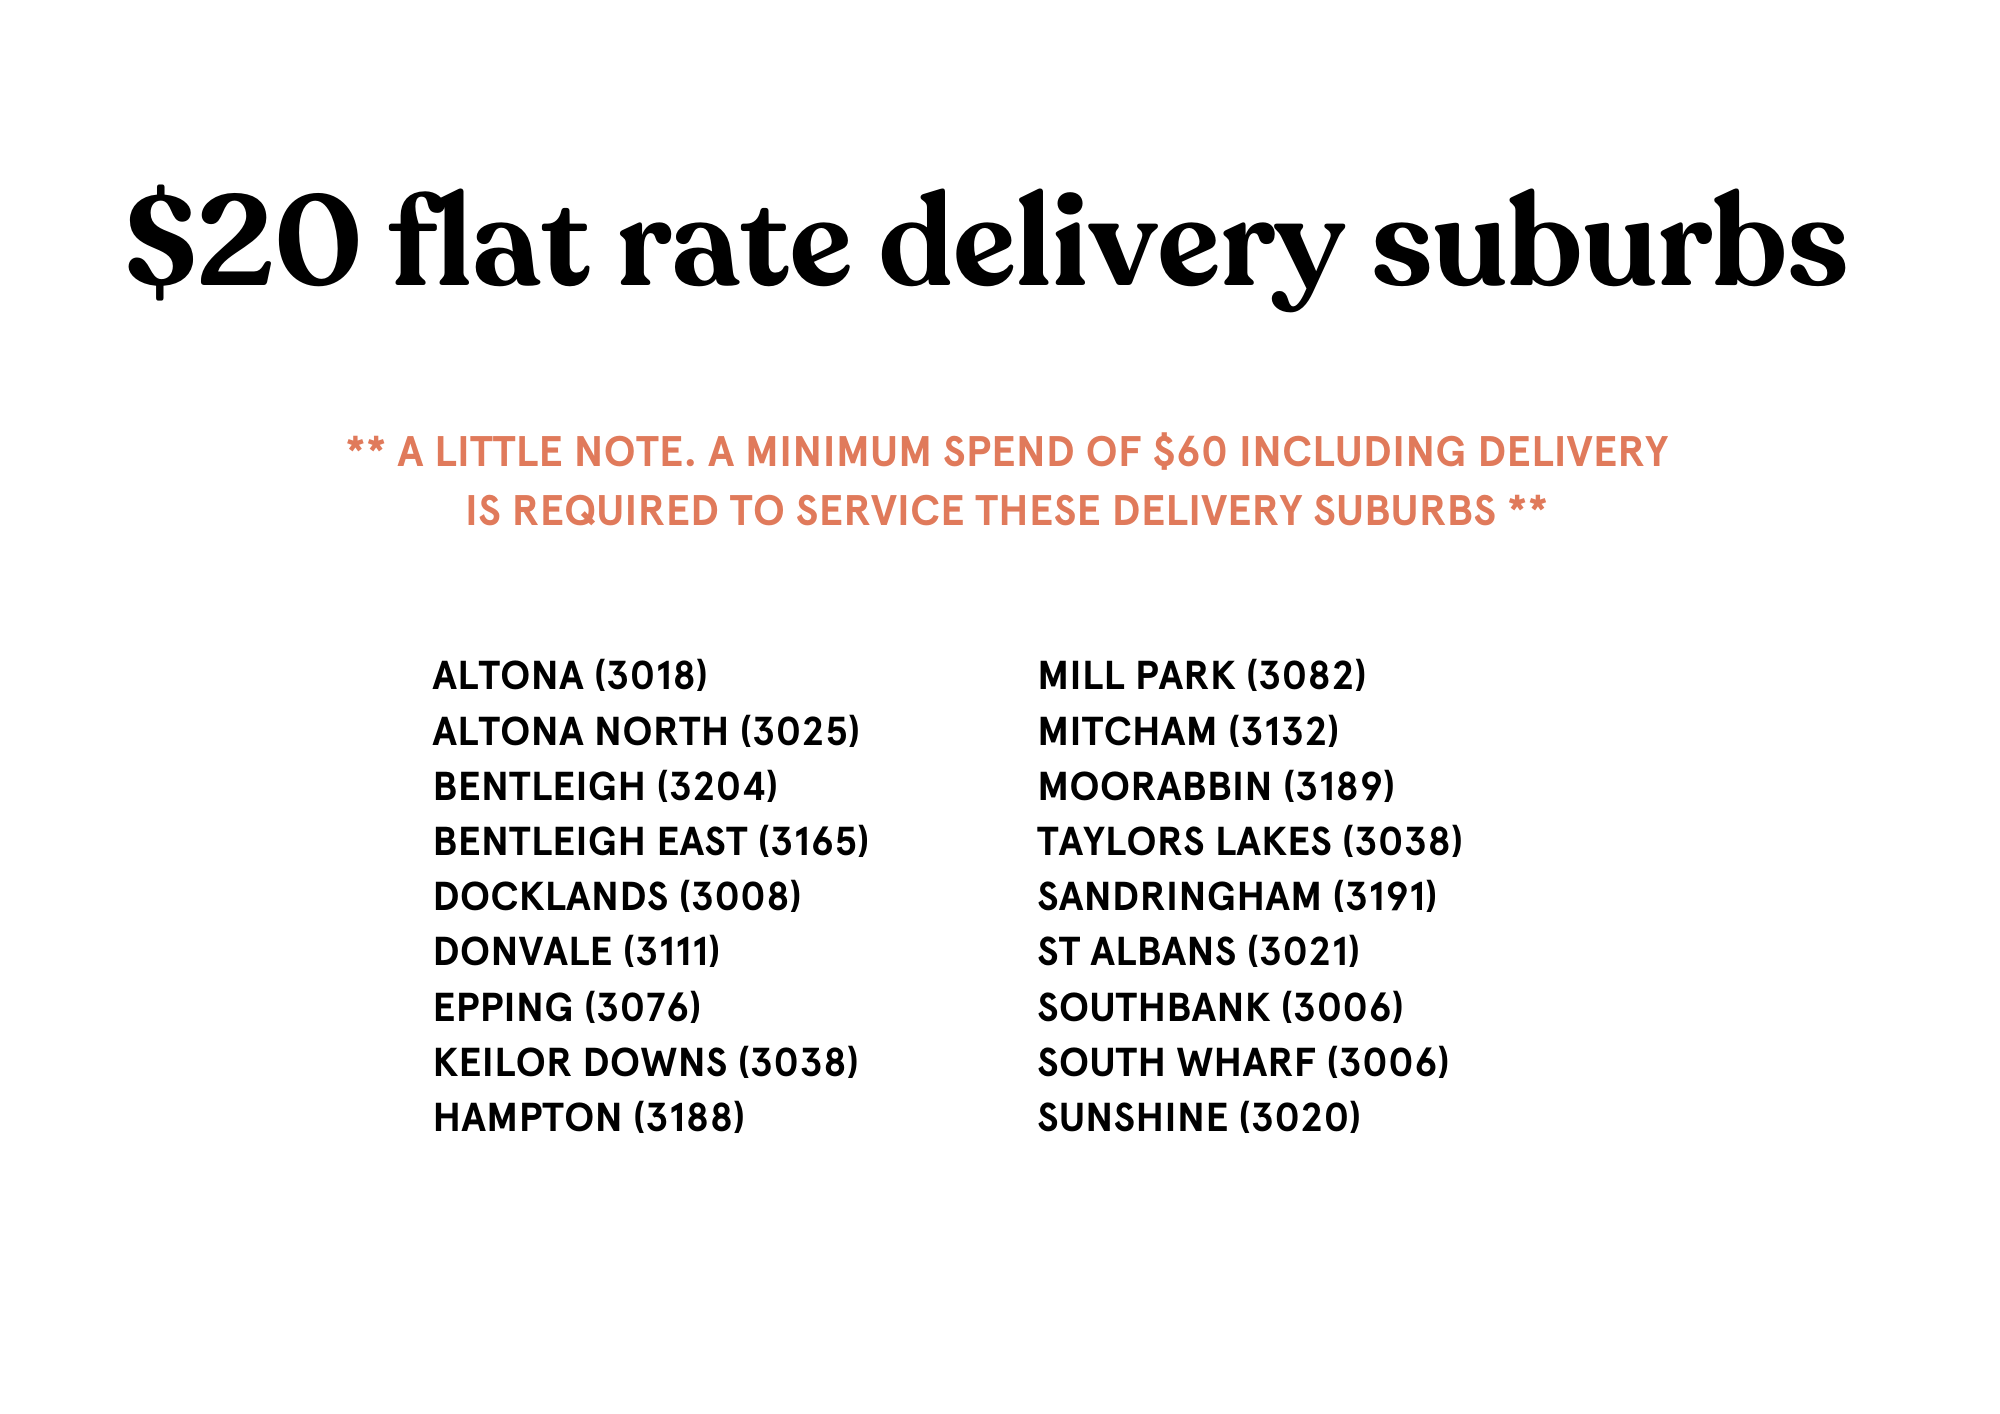 These are our $20 Melbourne Flower Delivery suburbs including ALTONA (3018) ALTONA NORTH (3025) BENTLEIGH (3204) BENTLEIGH EAST (3165) DOCKLANDS (3008) DONVALE (3111) EPPING (3076) KEILOR DOWNS (3038) HAMPTON (3188) MILL PARK (3082) MITCHAM (3132) MOORABBIN (3189) TAYLORS LAKES (3038) SANDRINGHAM (3191) ST ALBANS (3021) SOUTHBANK (3006) SOUTH WHARF (3006)  SUNSHINE (3020)